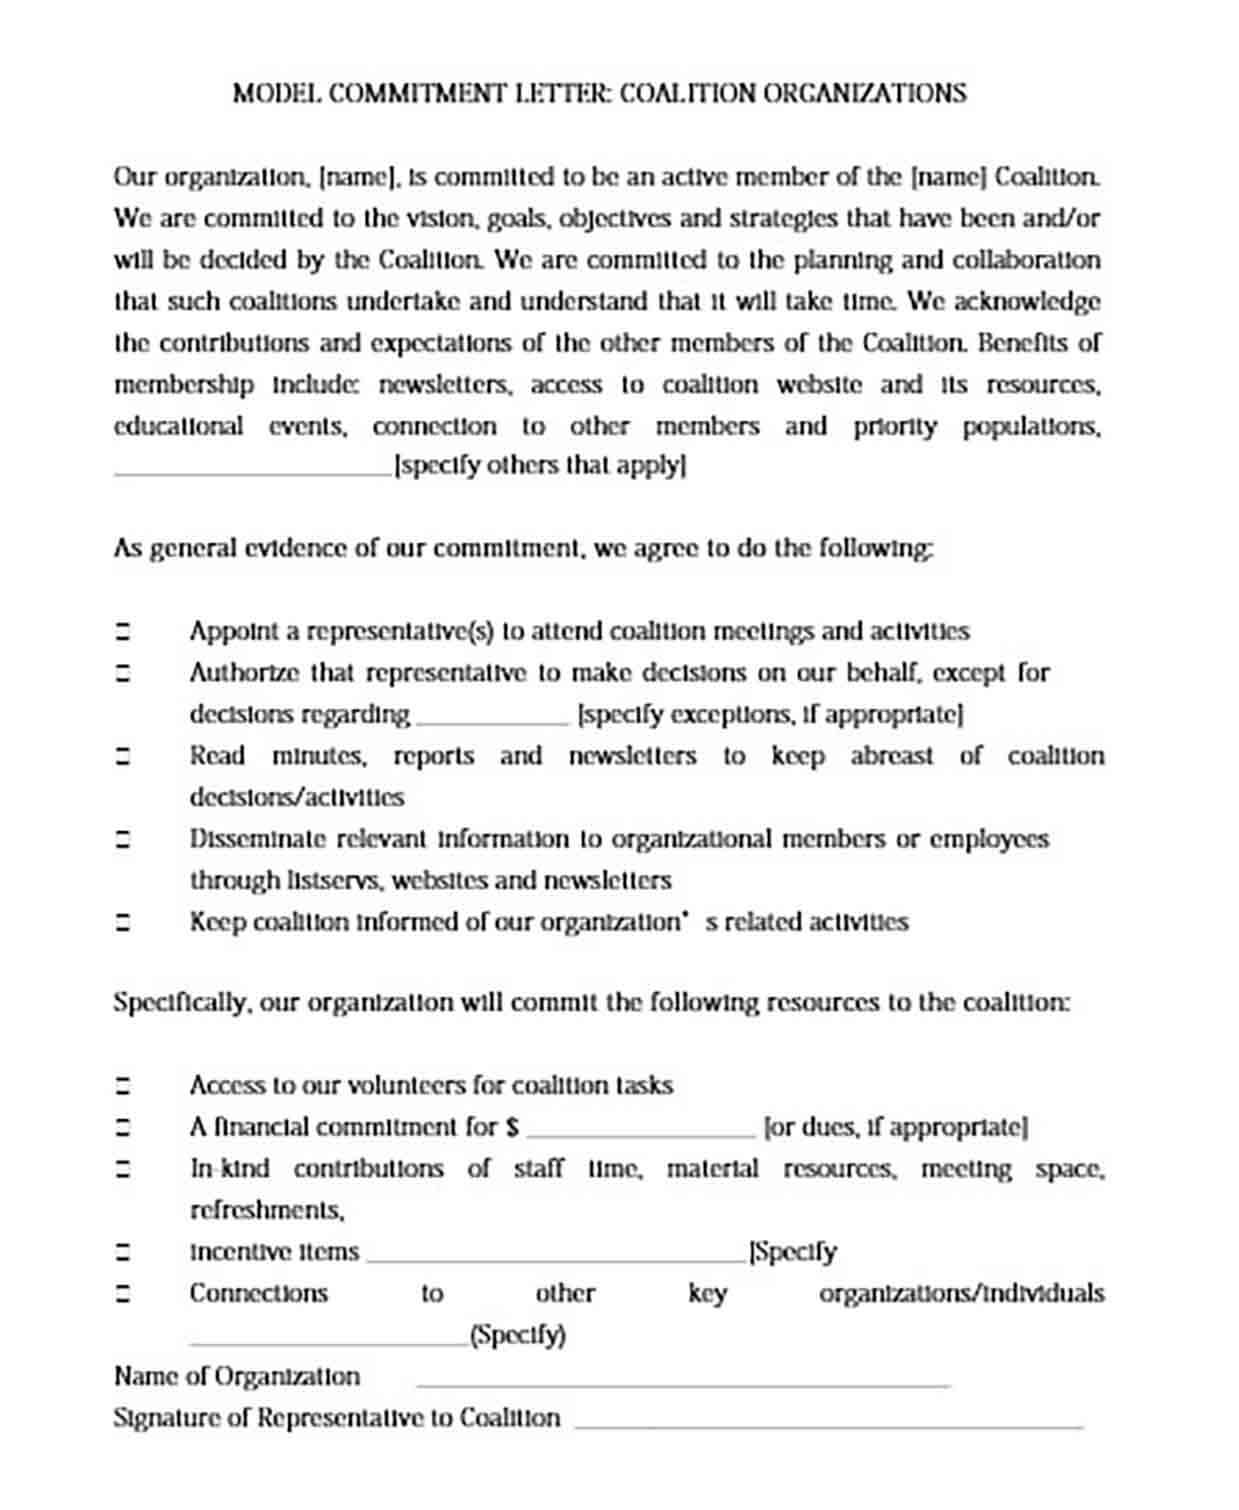 Personal Model Commitment Letter